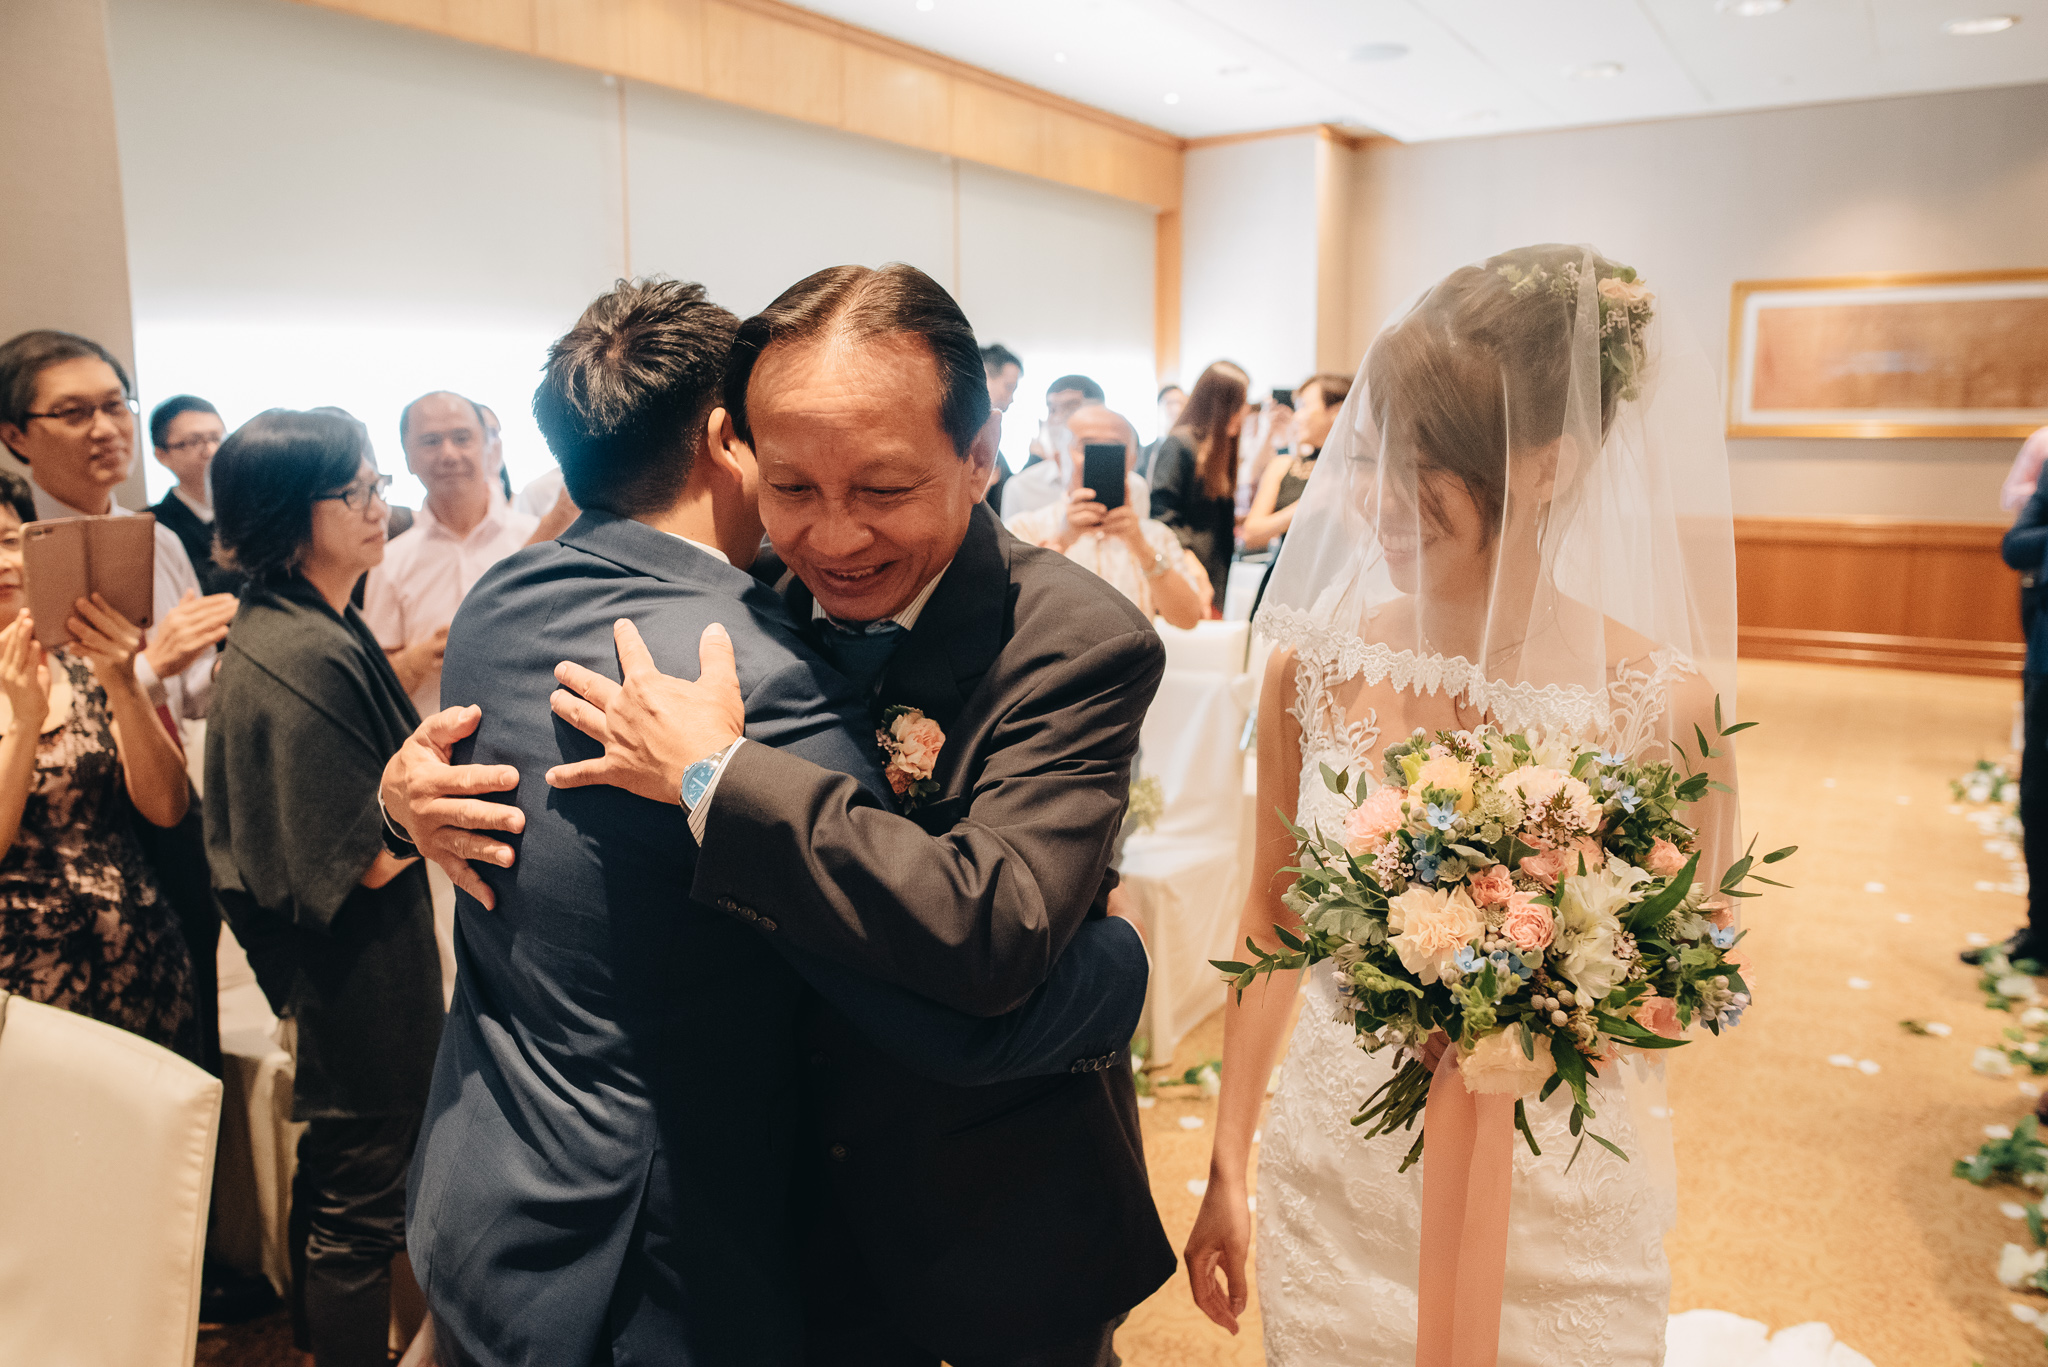 Jocelyn & Chris Wedding Day Highlights (resized for sharing) - 075.jpg